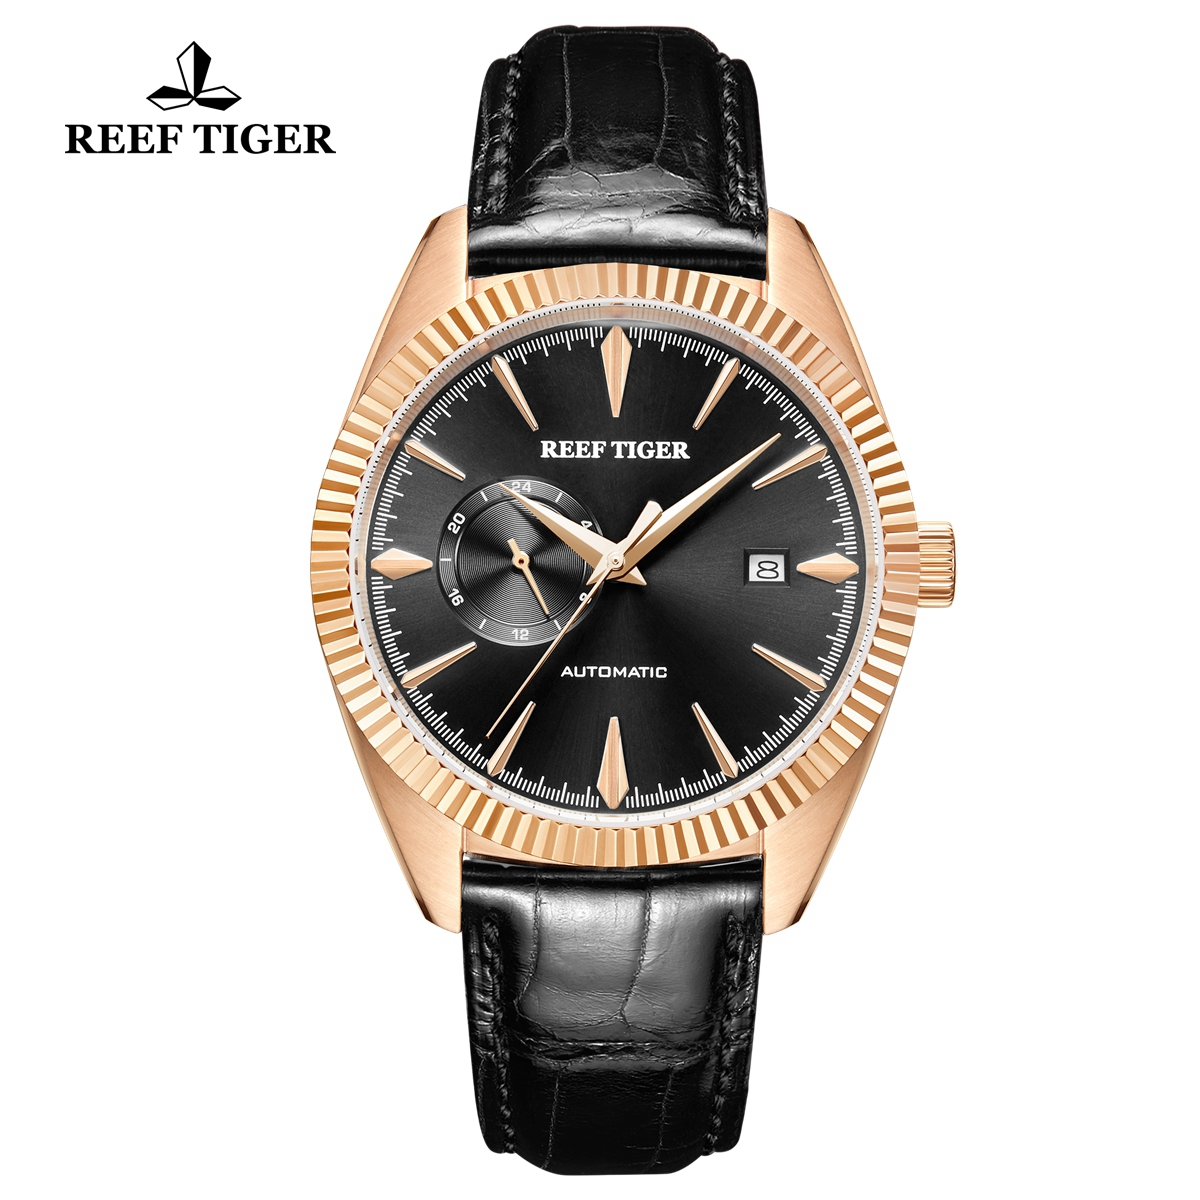 Reef Tiger Seattle Orion Fashion Rose Gold Leather Strap Black Dial Automatic Watch RGA1616-PBB